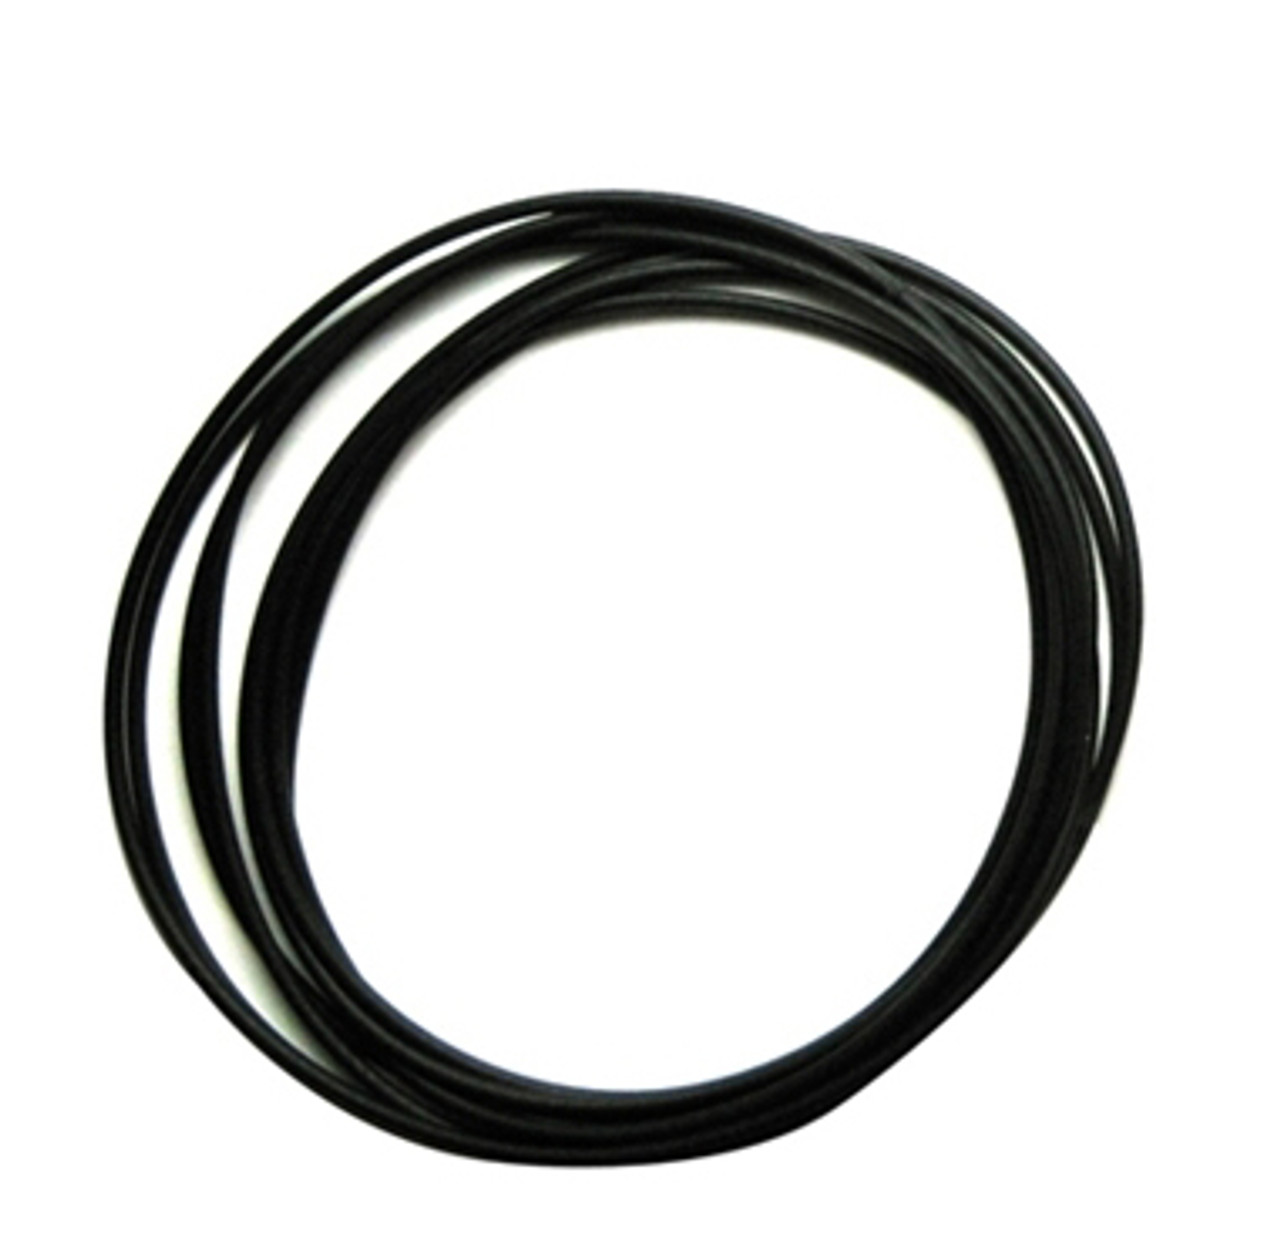 VPI replacement drive belts